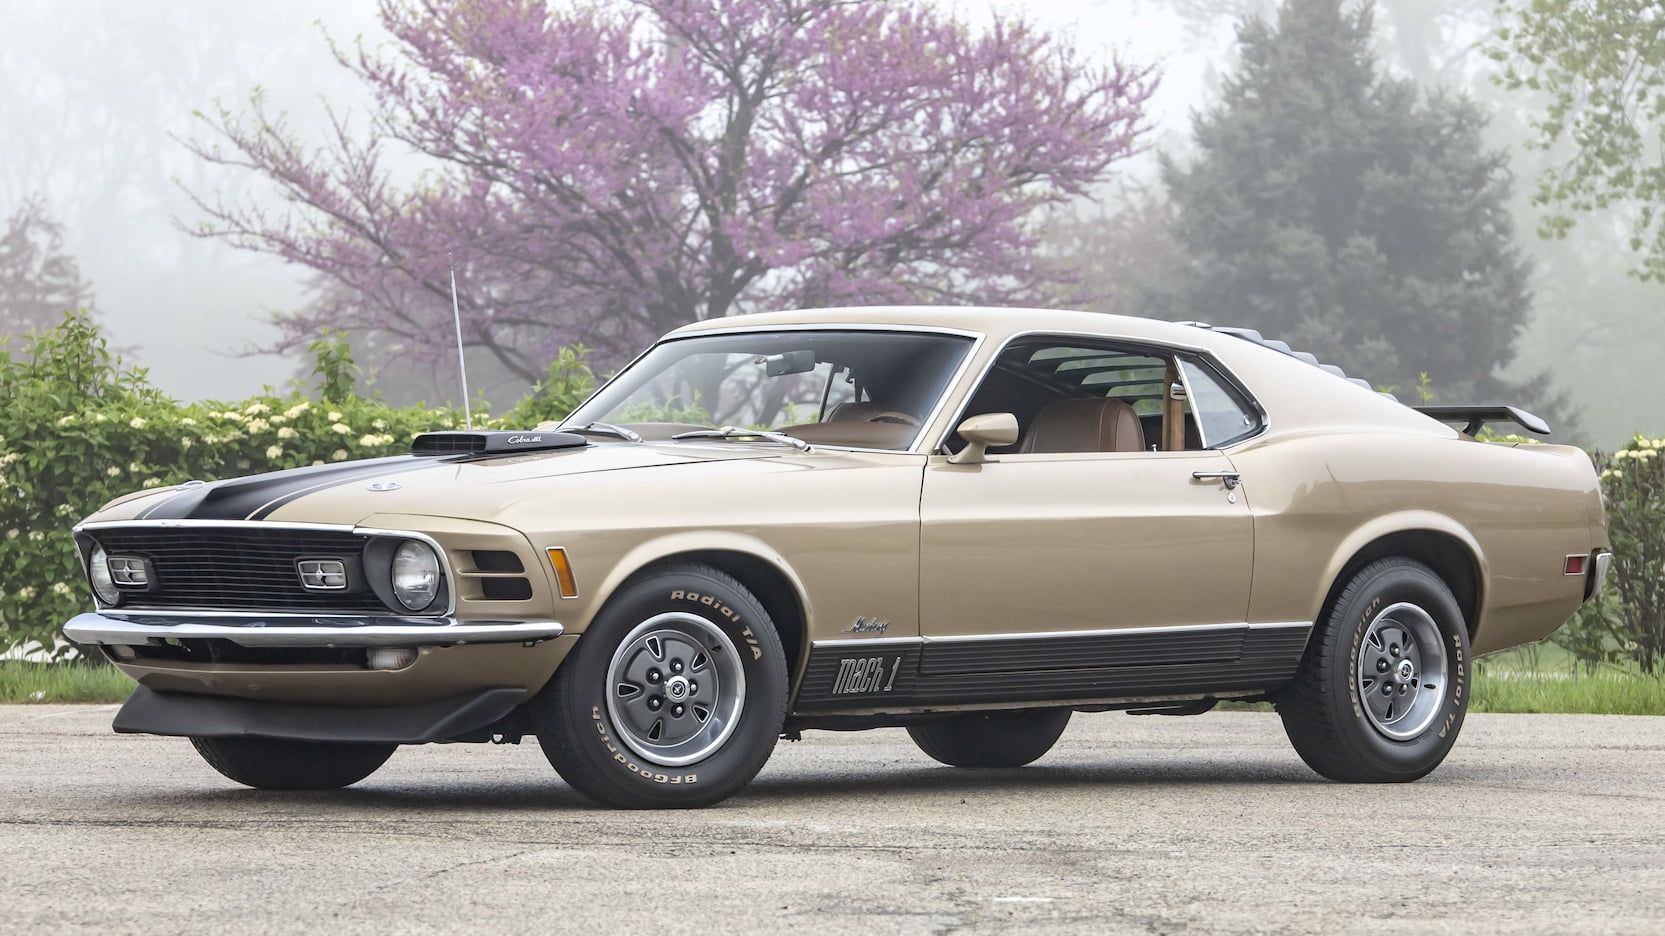 1970 Ford Mustang Mach 1 Fastback Presented As Lot T264 At Indianapolis In 1970 Ford Mustang Mustang Mach 1 Mustang